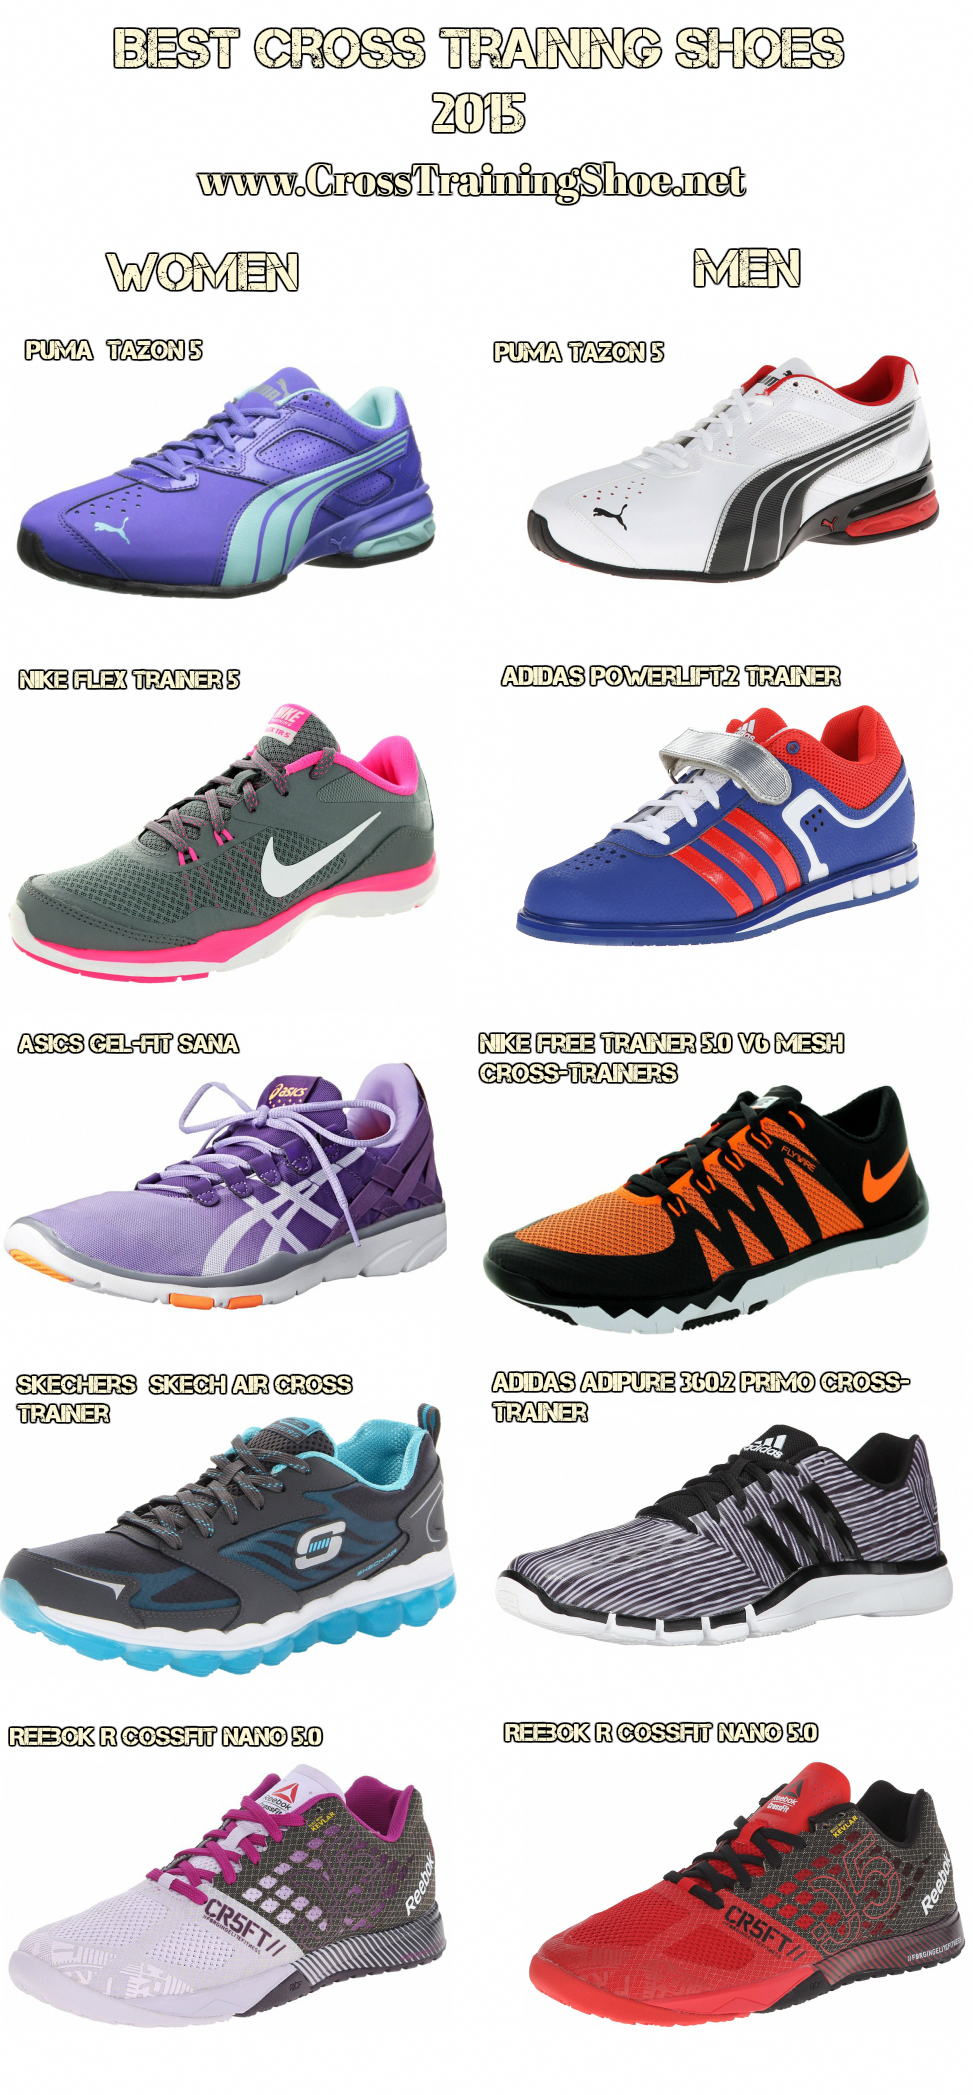 Best cross training (crossfit) shoes for men and women in 2015   CrossfitIdeas b933a447a8